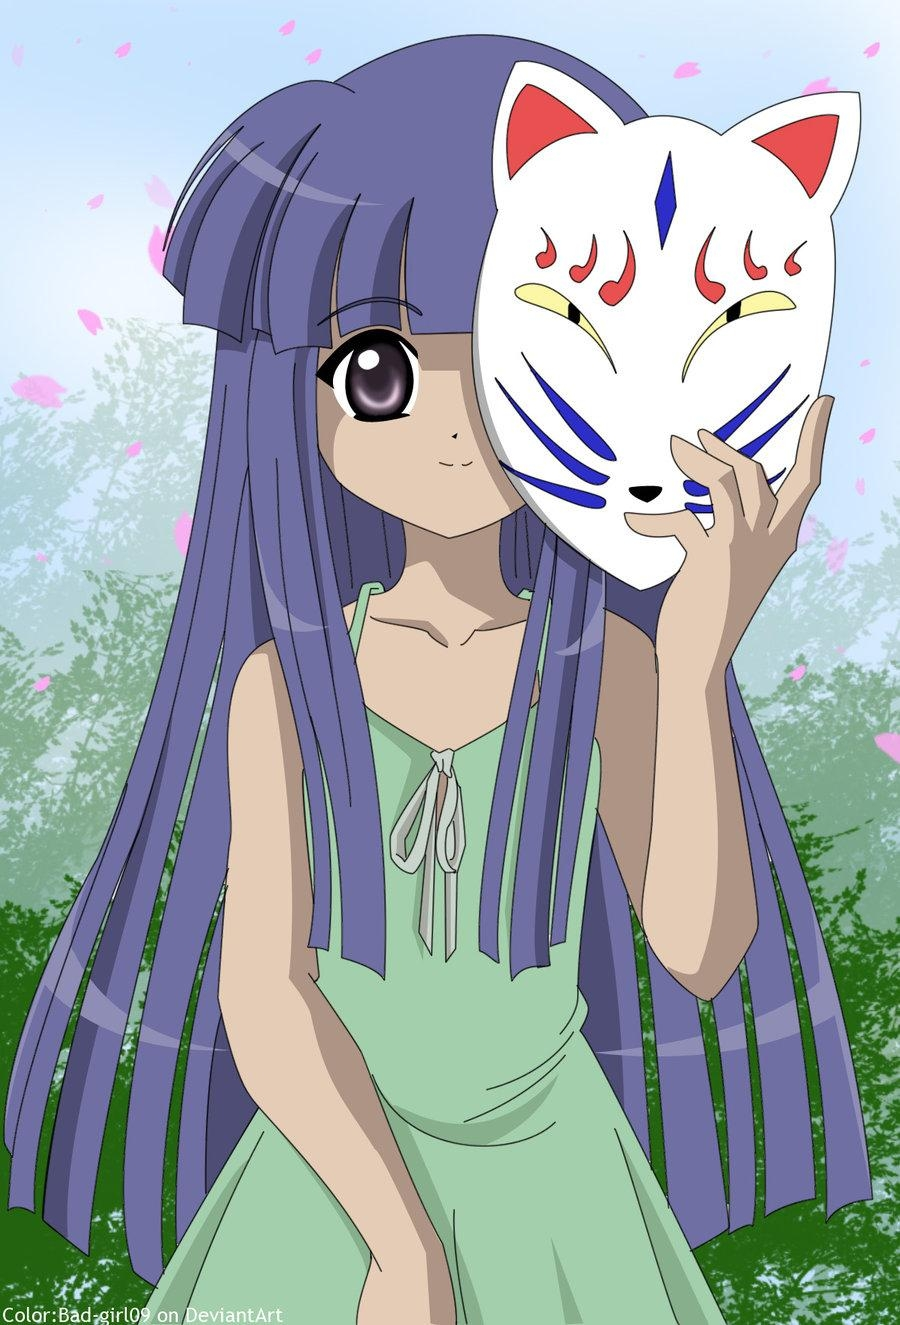 Furude Rika, Higurashi No Naku Koro Ni, Smile, 07th Expansion, Blue Hair, Solo, Female, Green Outfit, Little girl, Cherry Blossom